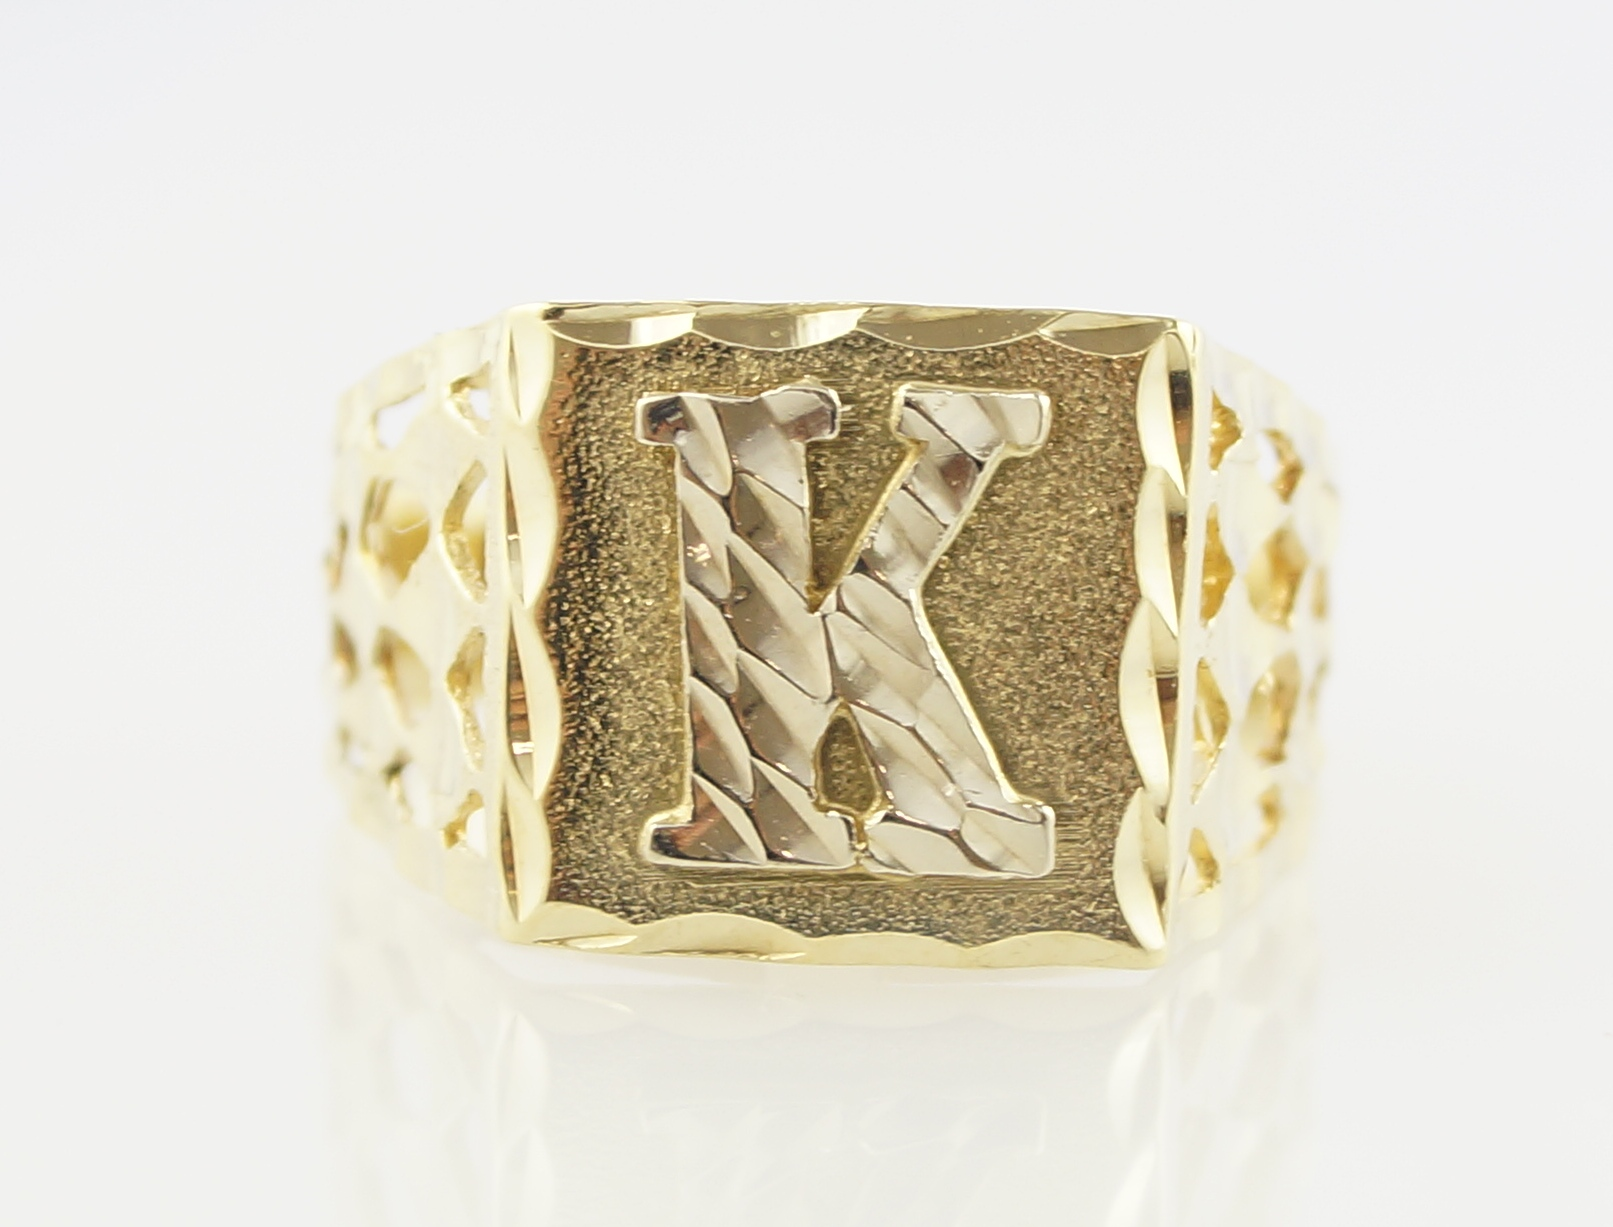 letter a gold ring 10k yellow gold cut letter k initial ring ebay 17510 | 30April162015